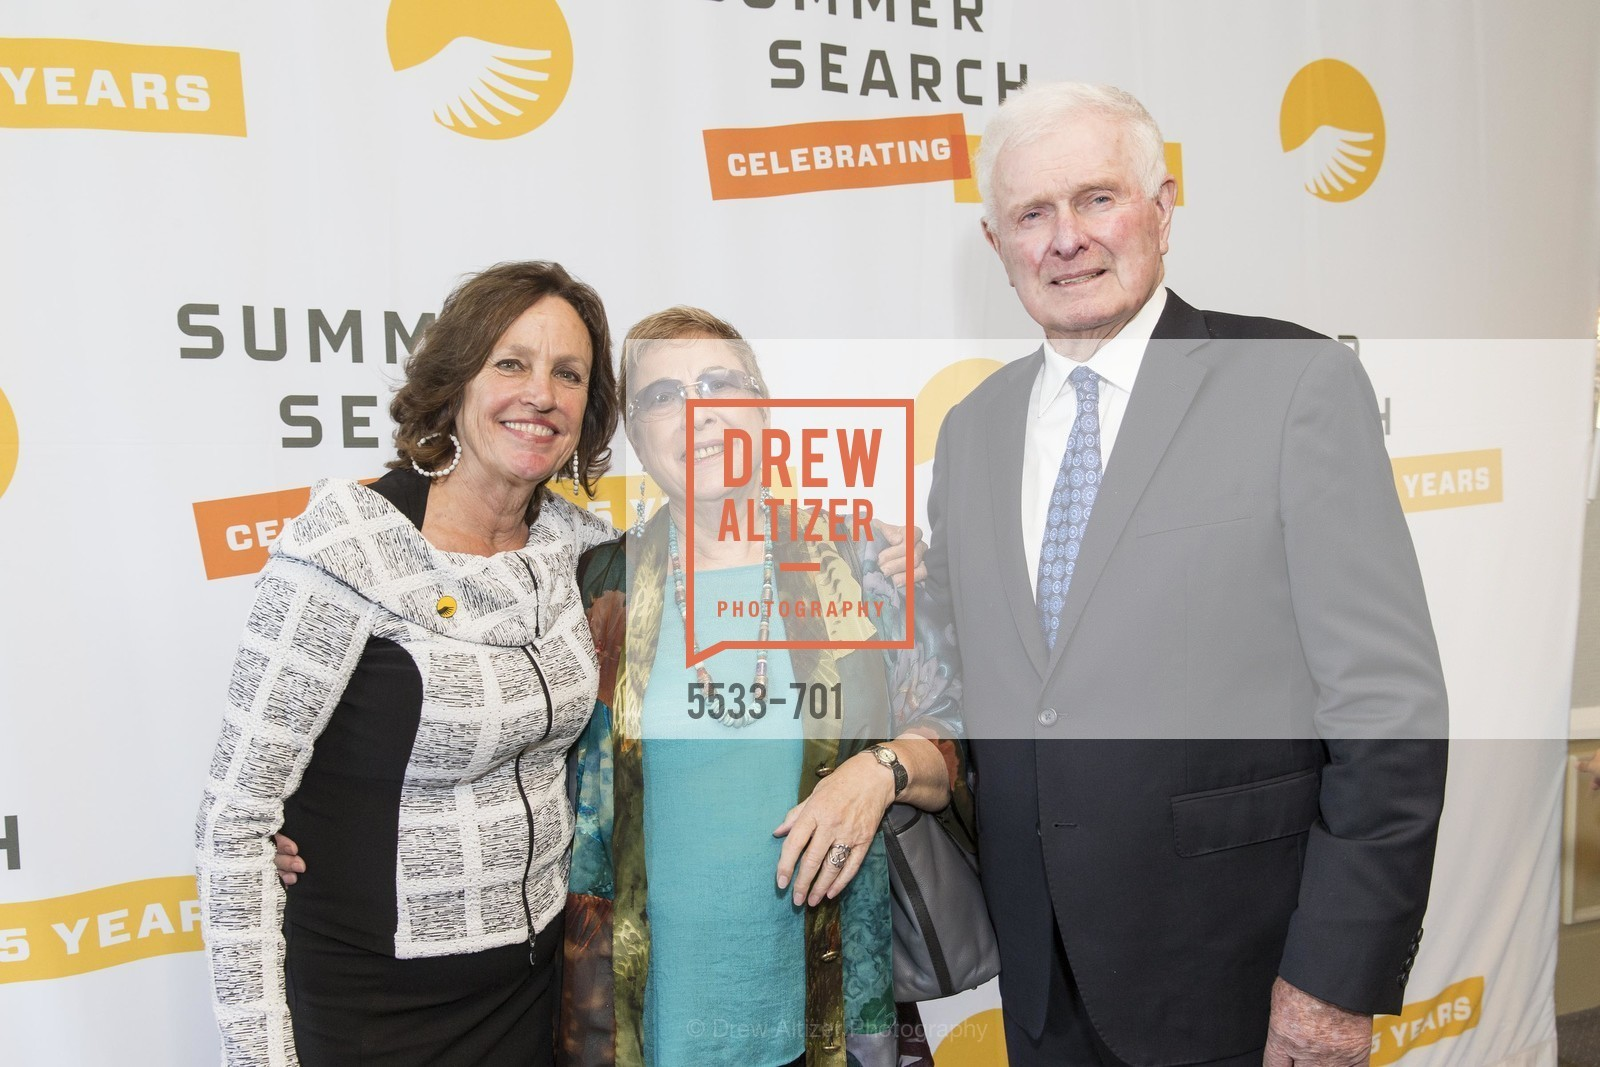 Linda Mornell, Lettie Lupis, John Moriarty, SUMMER SEARCH San Francisco 25th Anniversary, US, May 6th, 2015,Drew Altizer, Drew Altizer Photography, full-service agency, private events, San Francisco photographer, photographer california